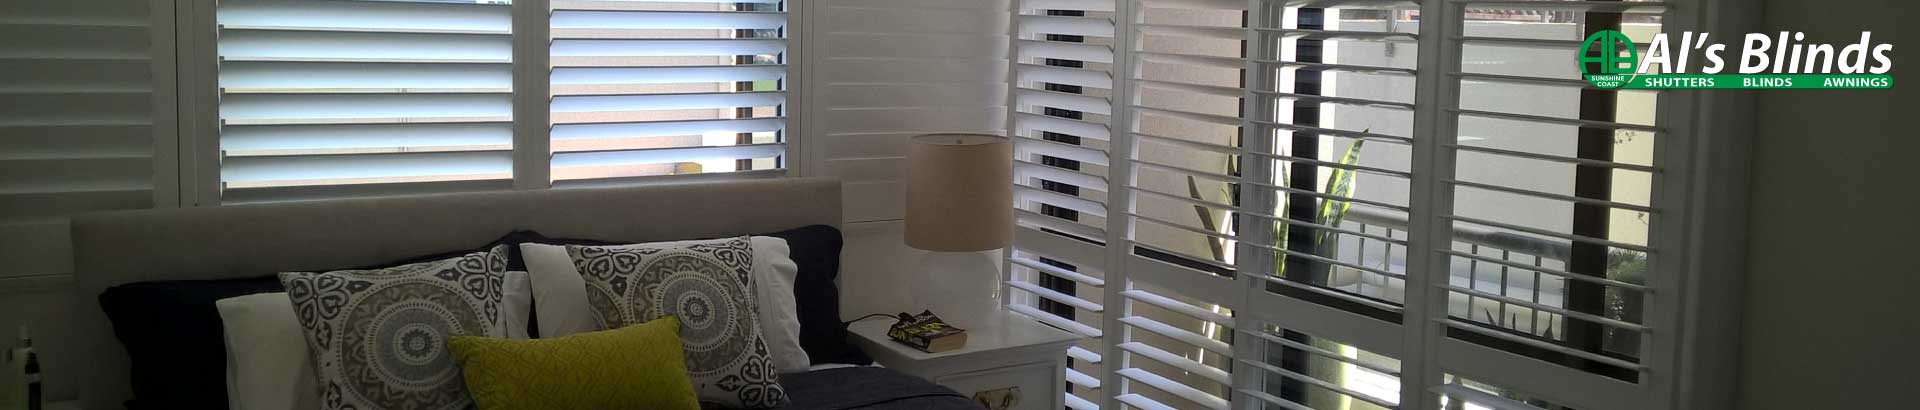 Plantation Shutters from Al's Blinds alternate window coverings image